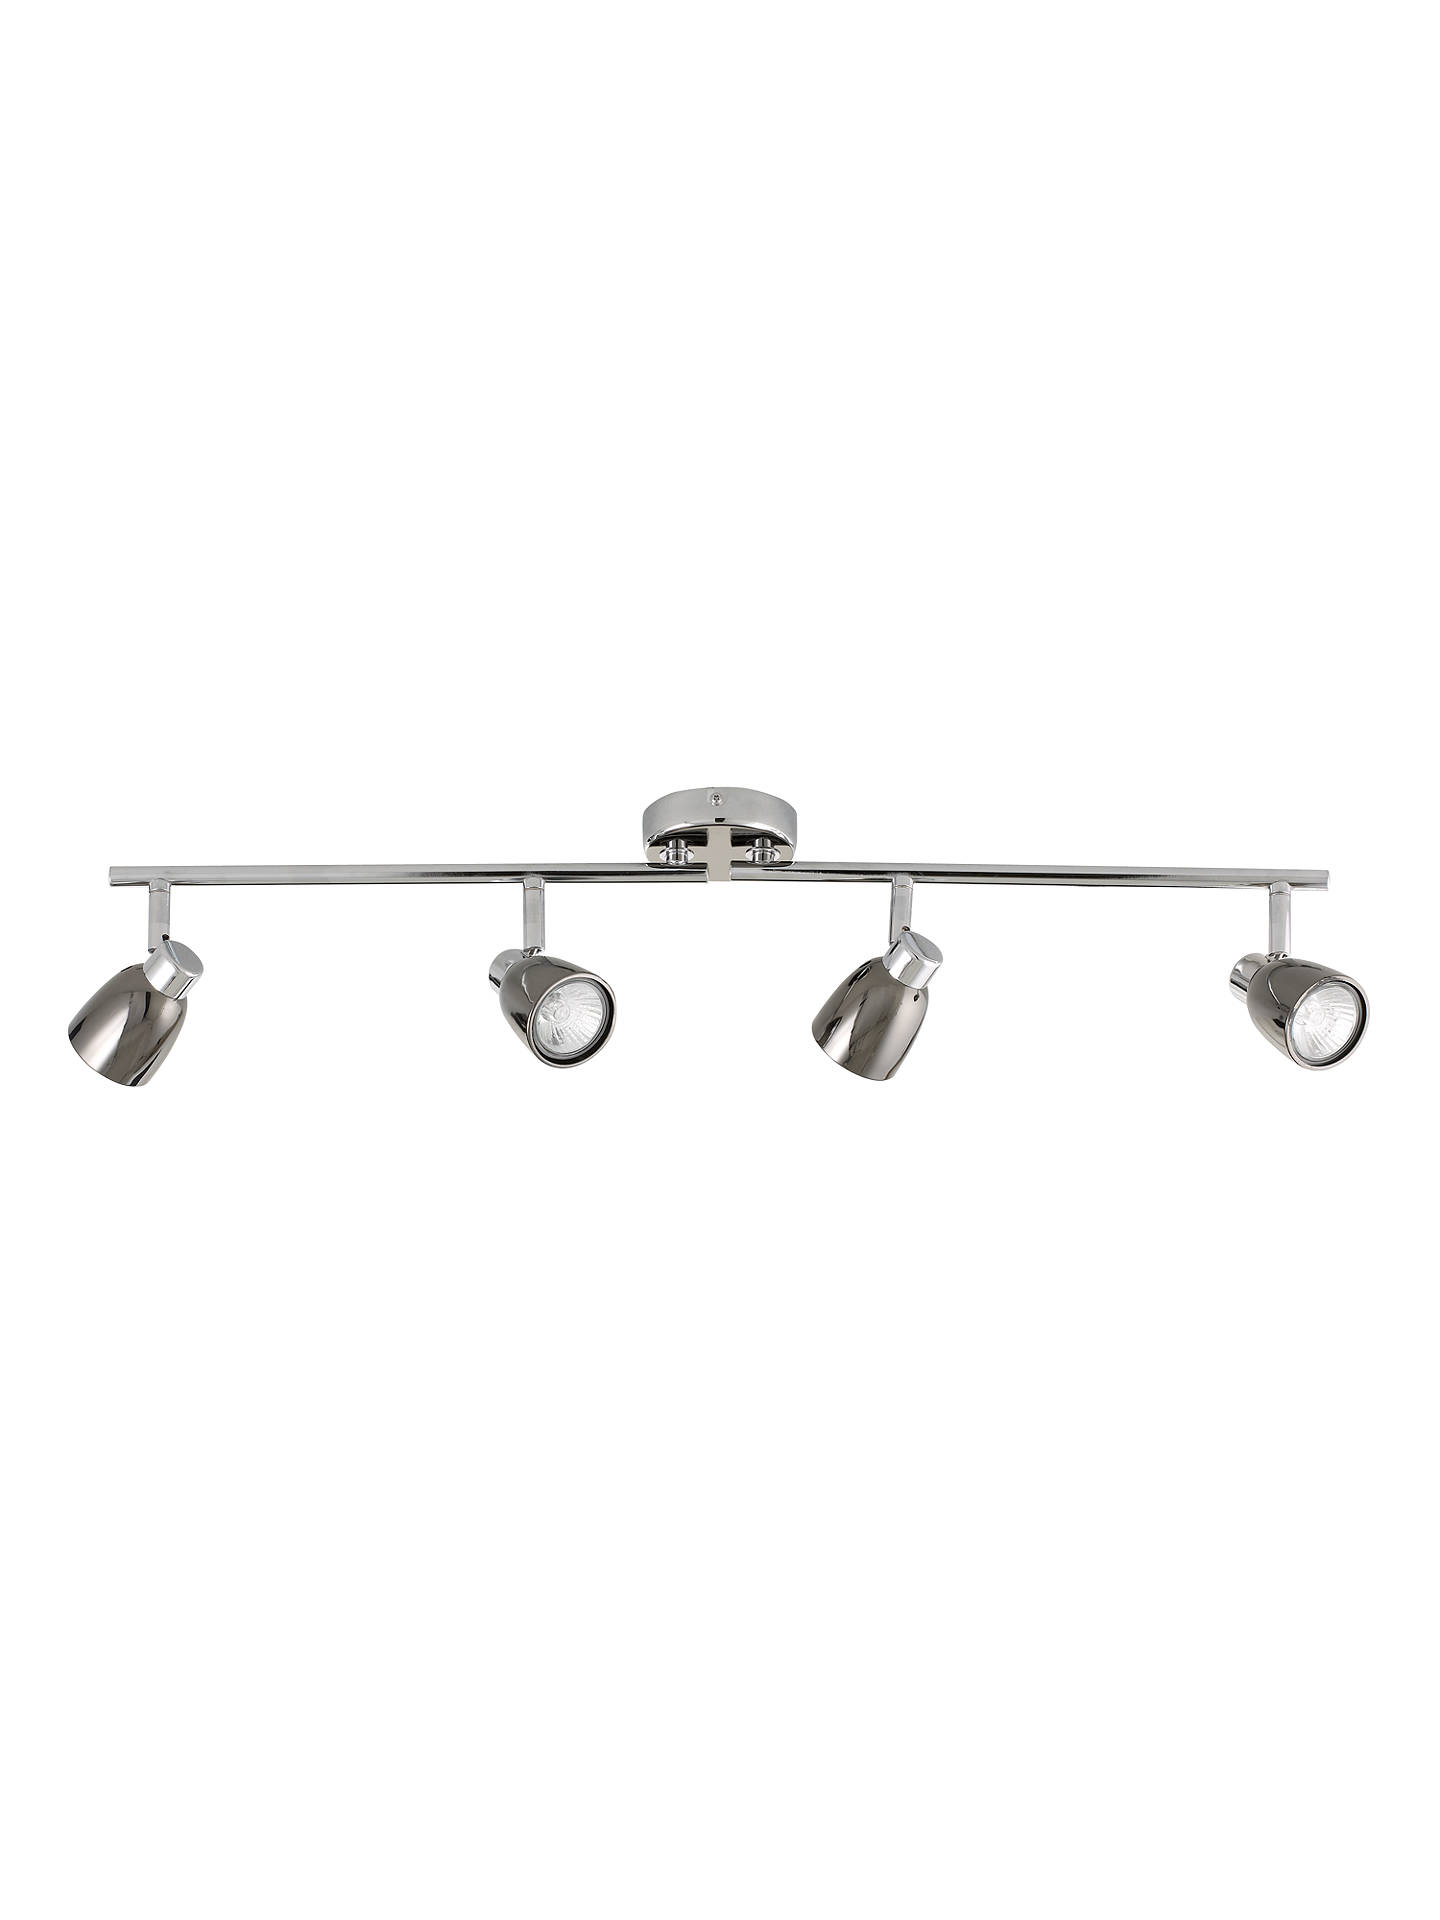 BuyJohn Lewis & Partners Fenix GU10 LED 4 Spotlight Ceiling Bar, Black Pearl Nickel Online at johnlewis.com